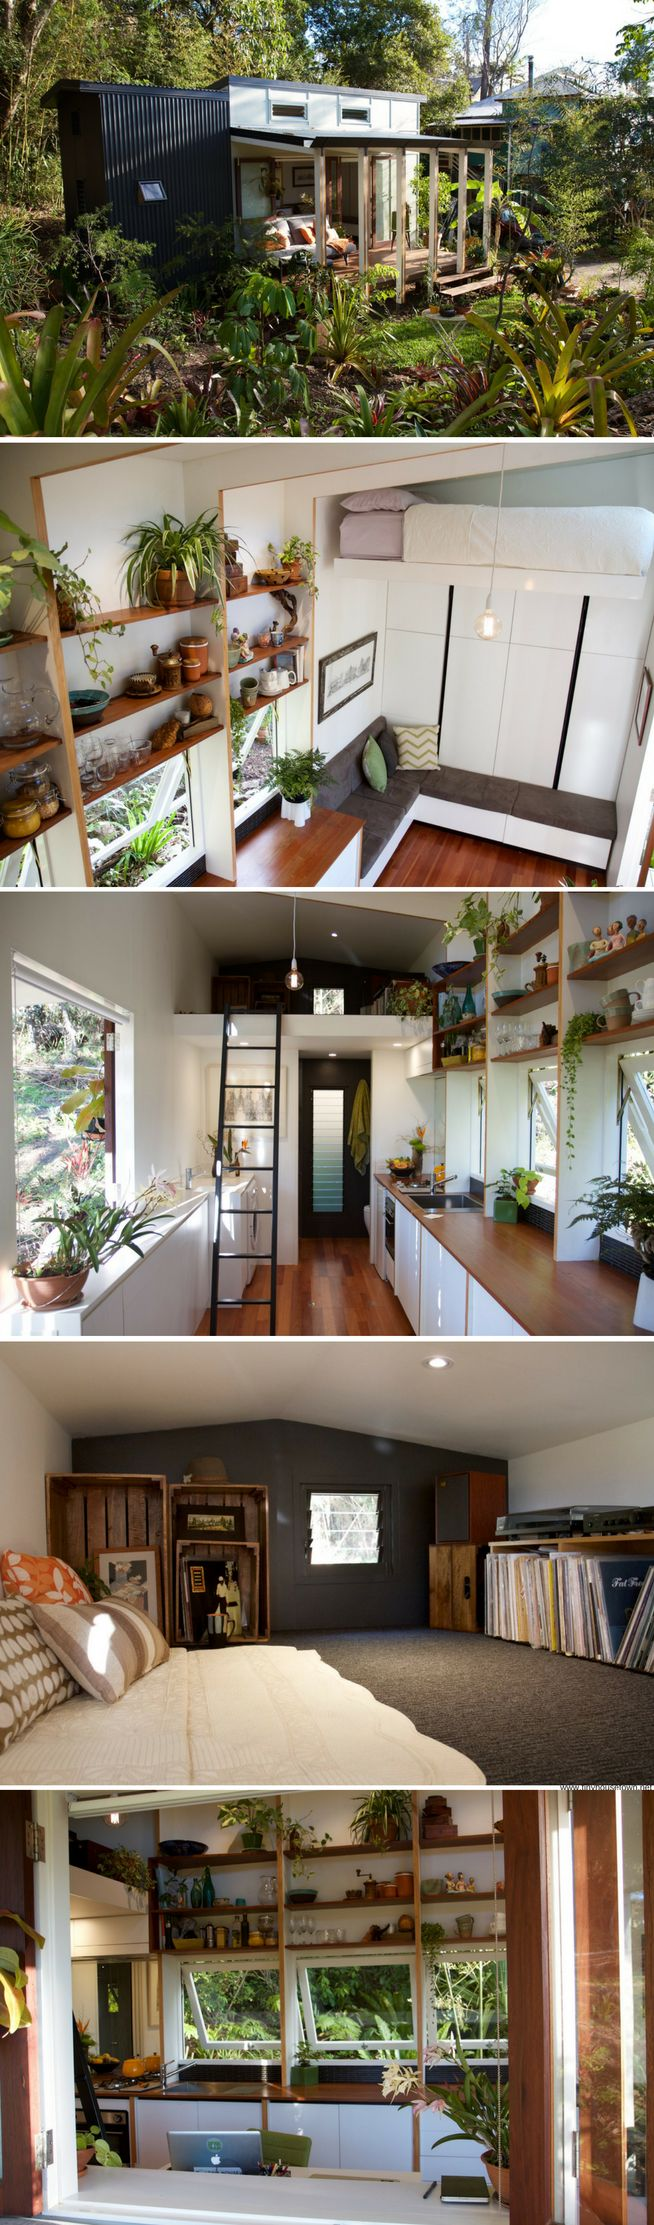 A gorgeous Australian tiny house the a retractable bed that lowers from the ceiling!